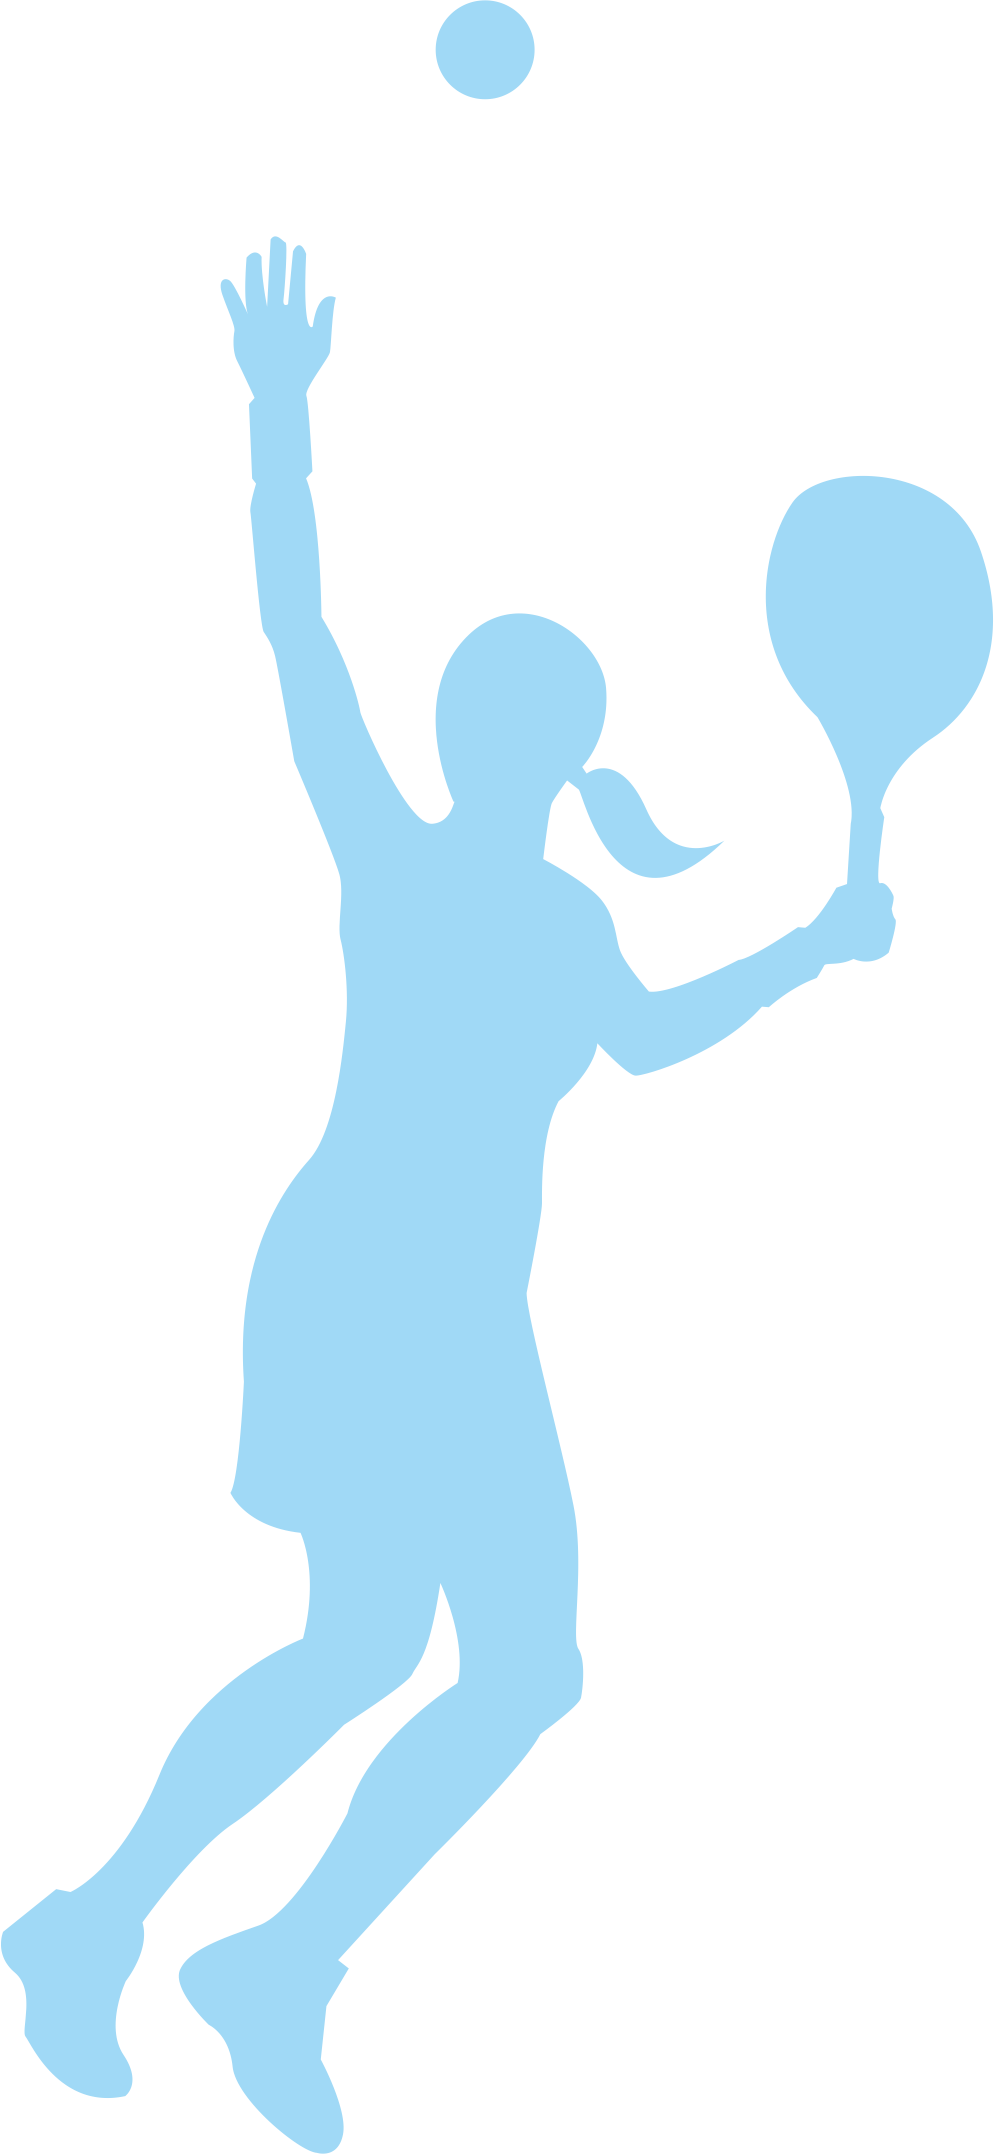 994x2154 Tennis Girl Adobe Illustrator Clip Art